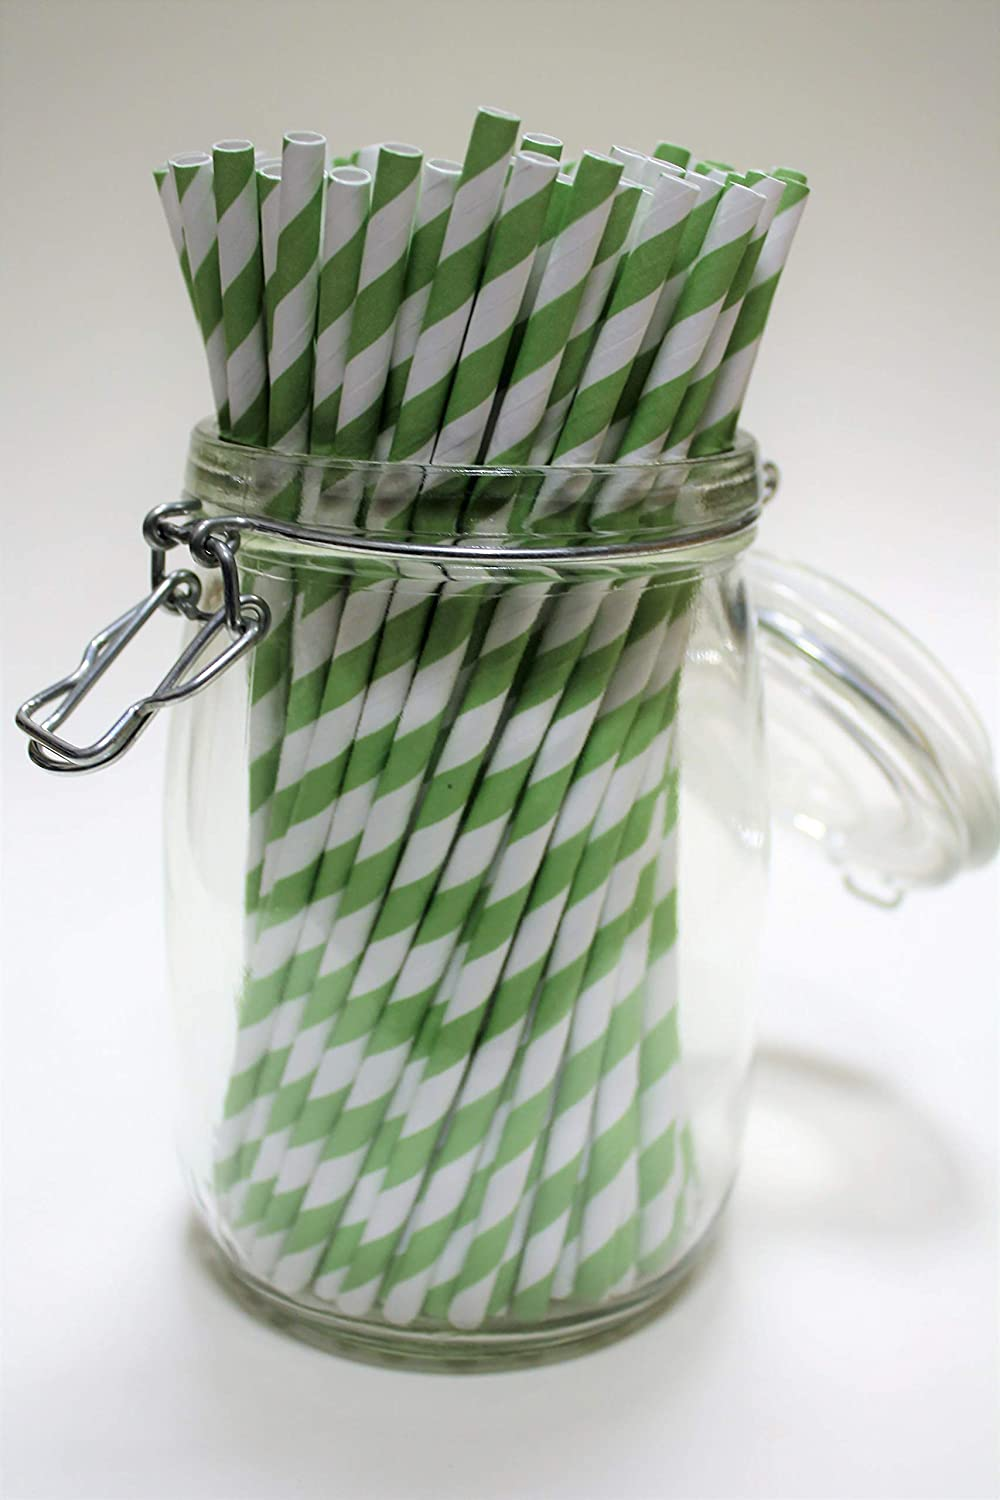 250 Green /& White Striped Paper Straws - Pack Size 250//500 Biodegradable//Eco-Friendly//Highly Durable//Food Safe//Suitable for All Occasions 6mm x 200mm